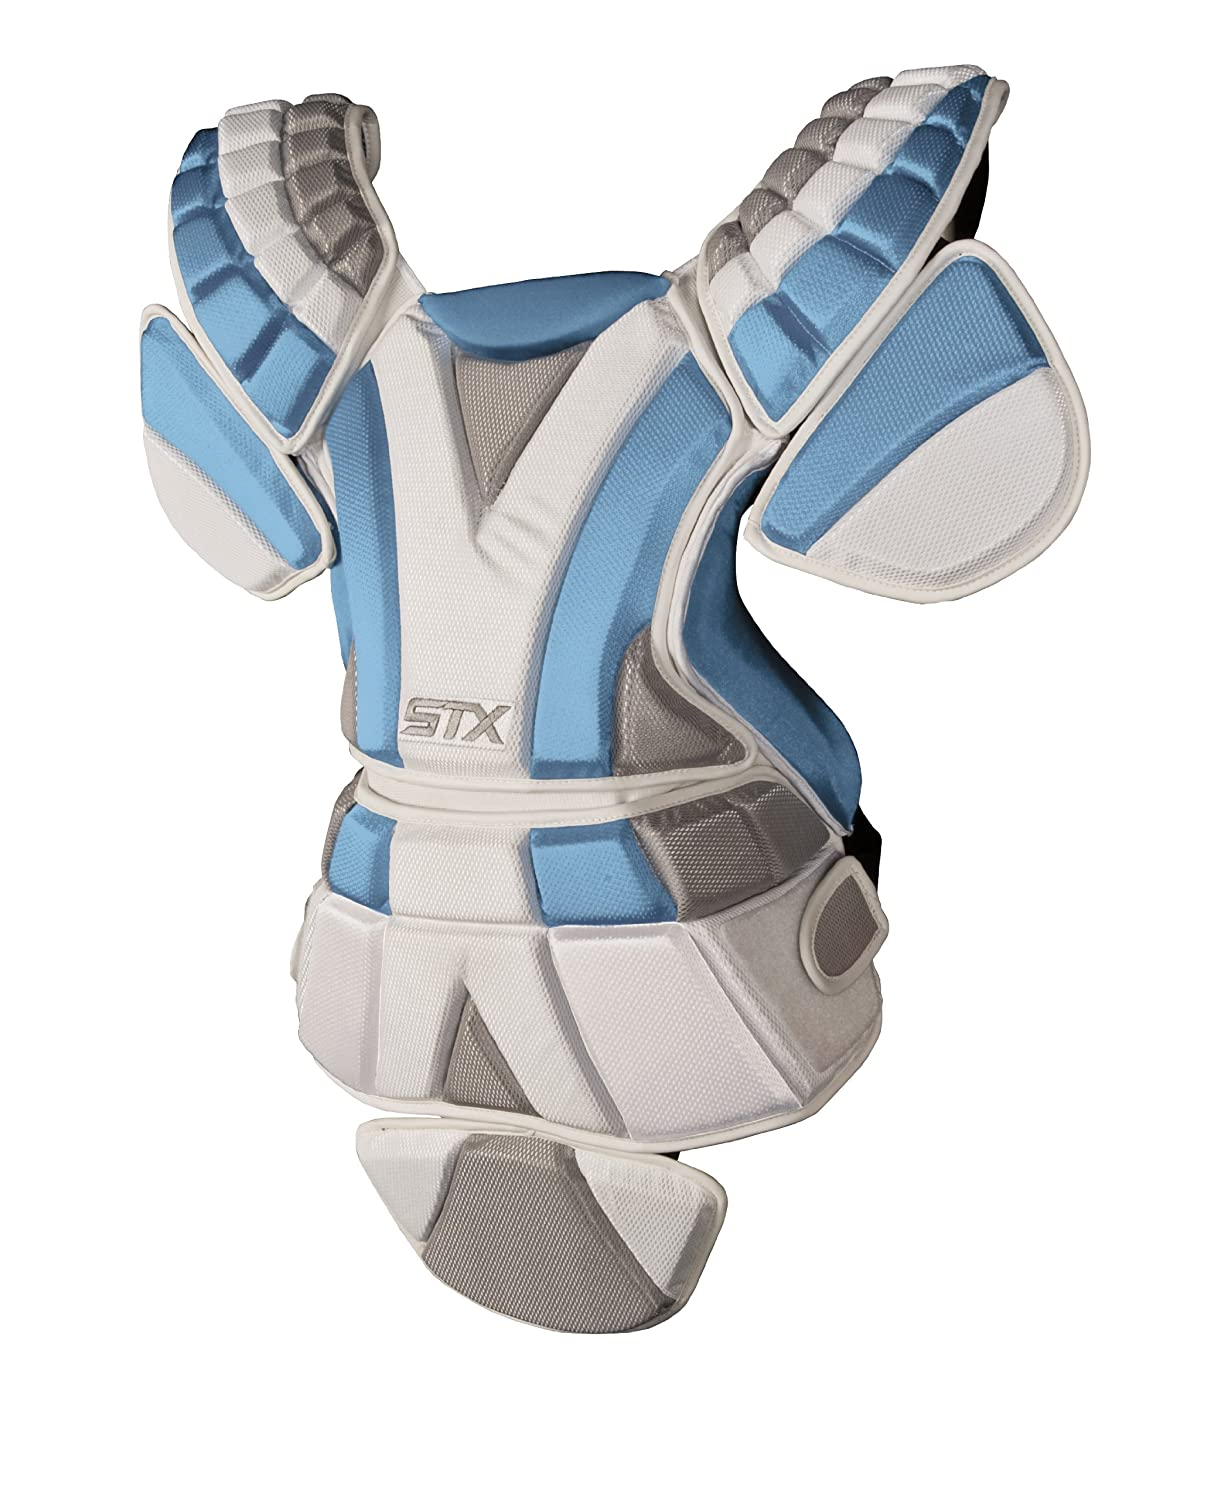 STX Lacrosse Women's Sultra Goalie Chest Protector PD-WS-COLSIZ